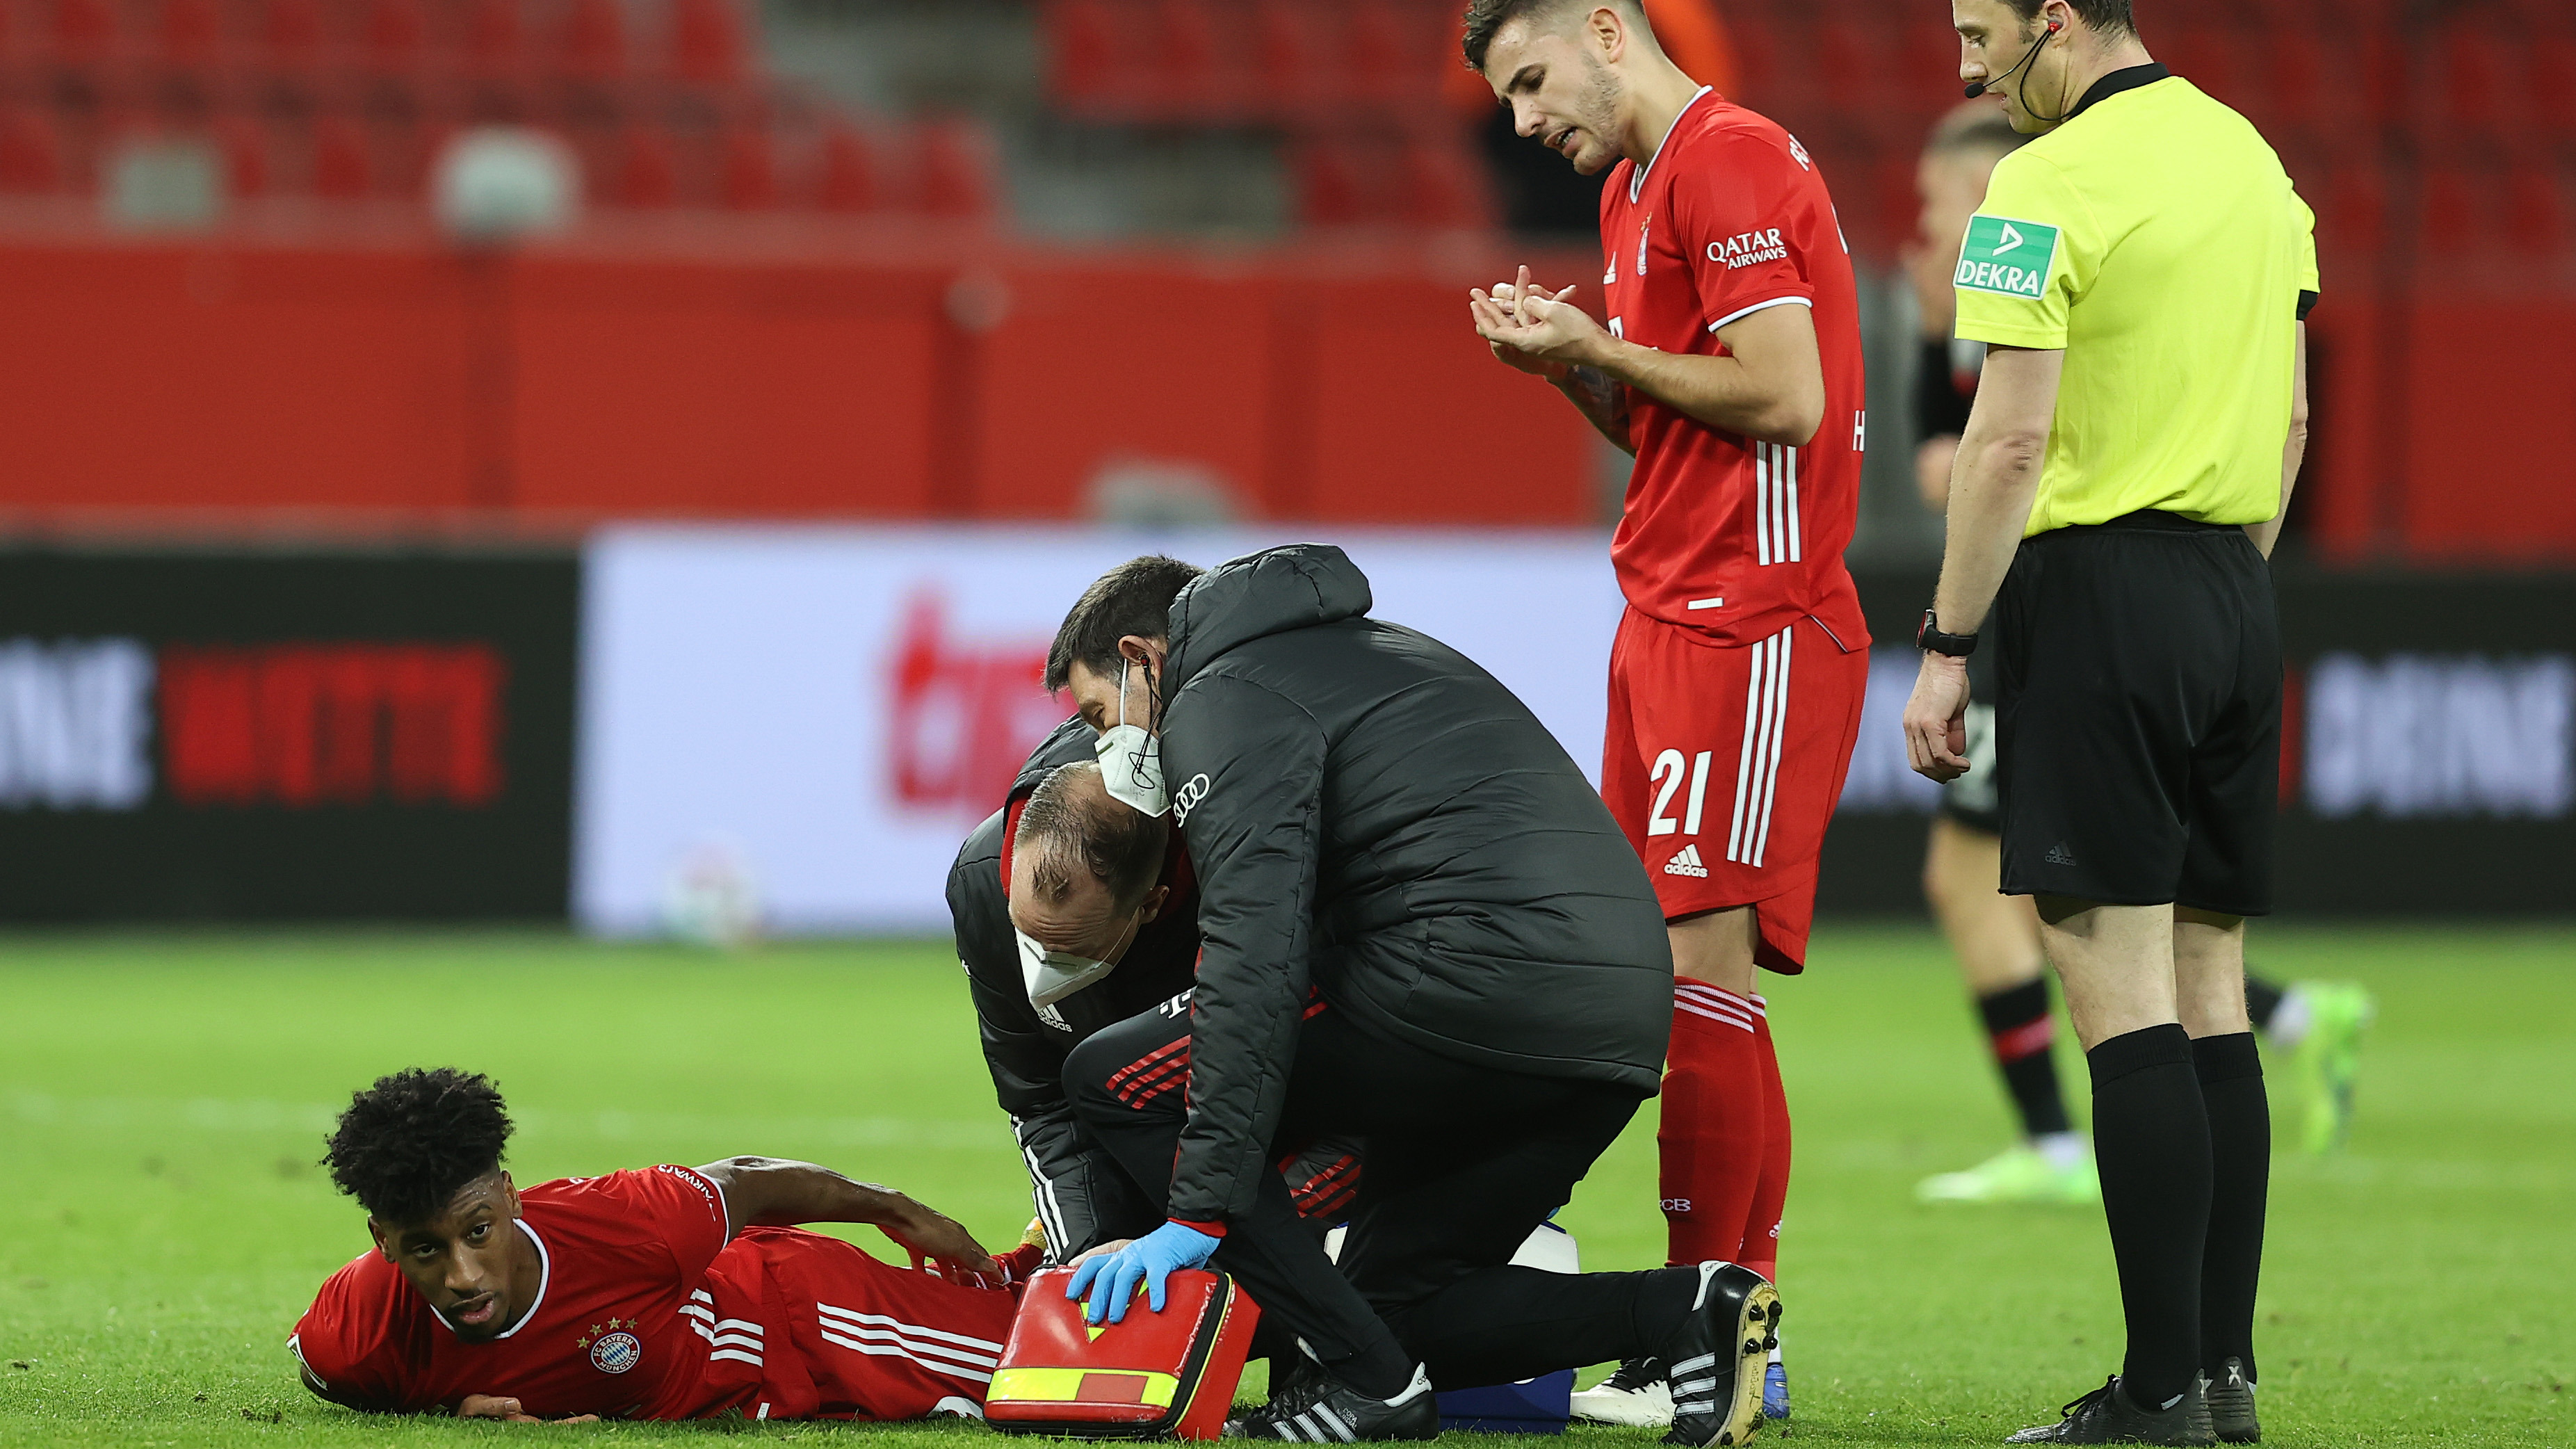 Bayern Munich give Coman injury update after winger limped off against Leverkusen